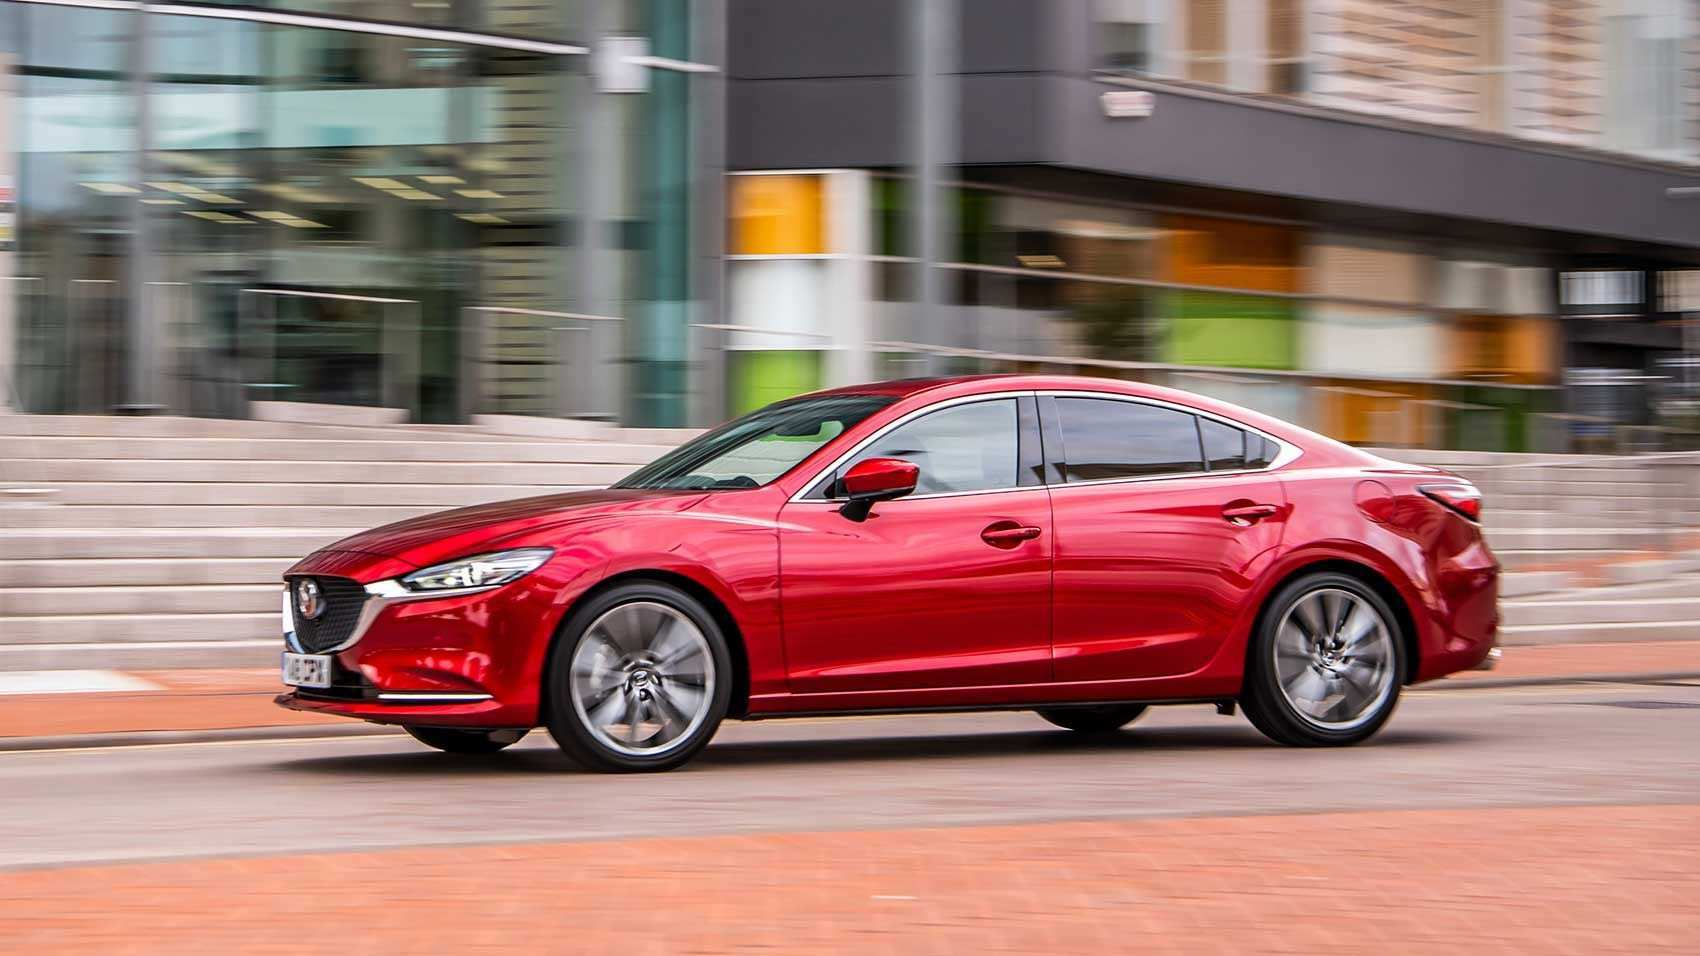 34 Best Review New 2019 Mazda 6 Spy Shots Redesign Price And Review Rumors with New 2019 Mazda 6 Spy Shots Redesign Price And Review